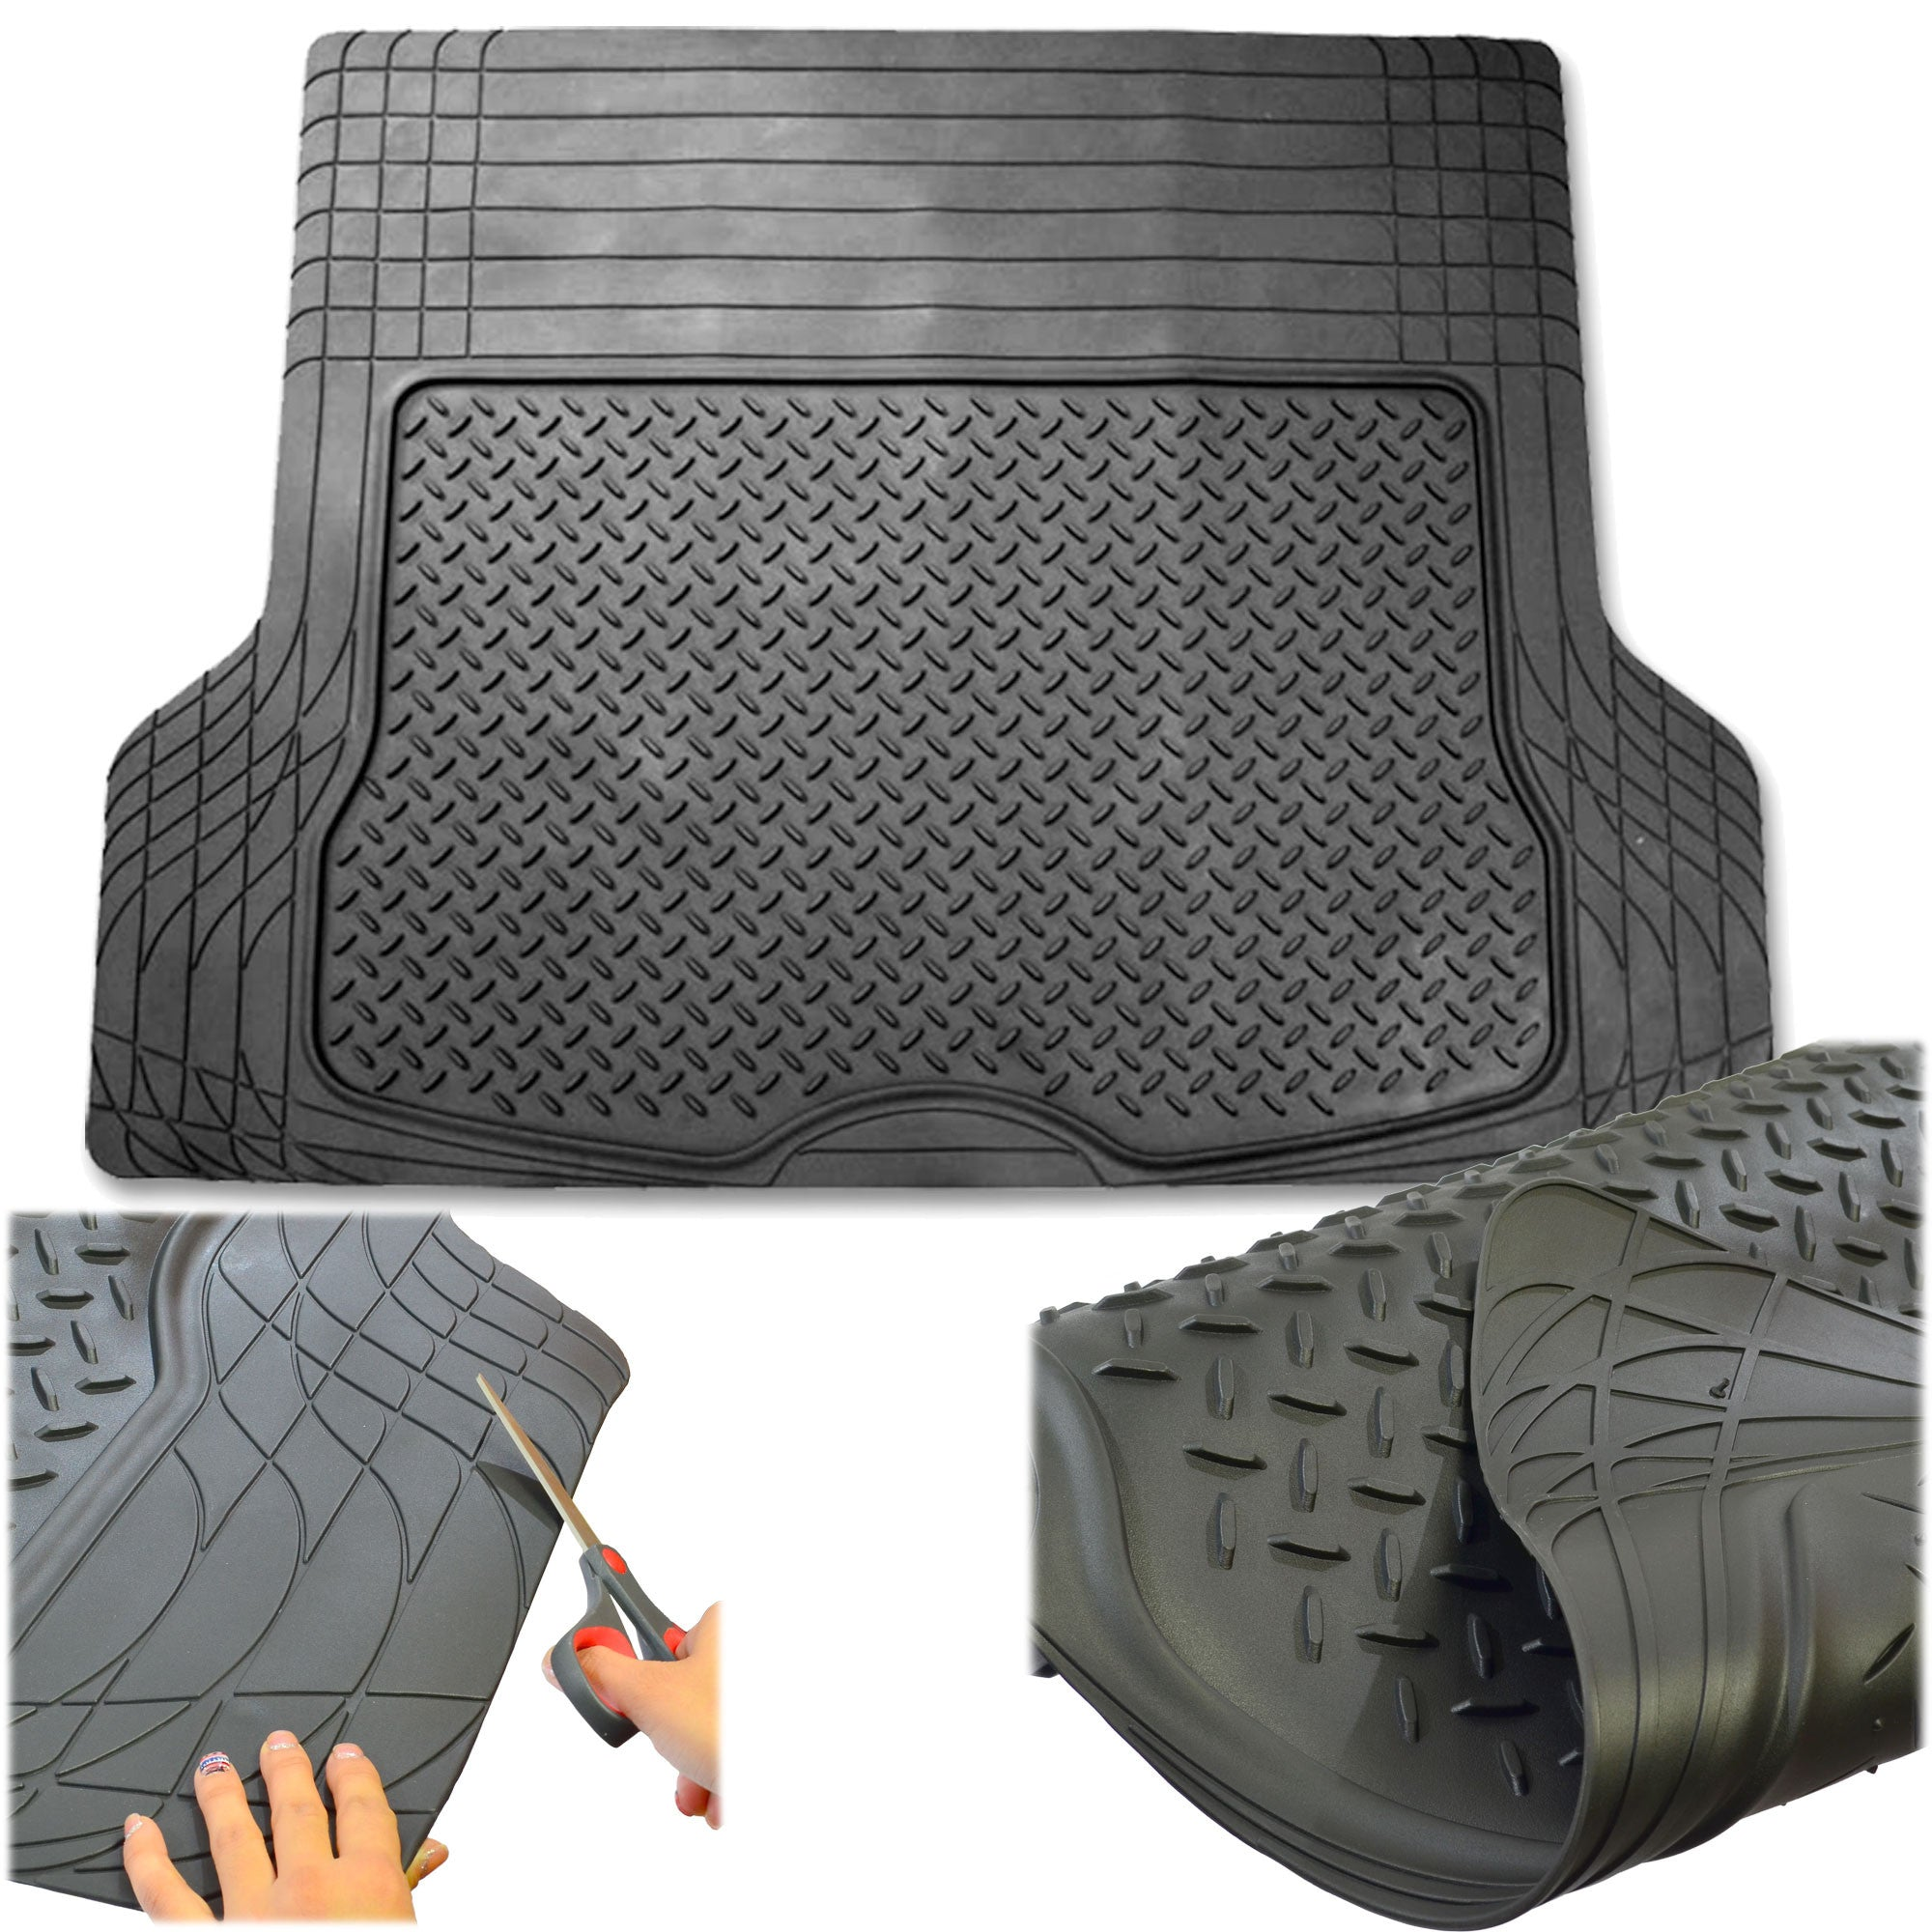 mat car heavy for beige duty dash floor product shop combo mats bestfh black auto